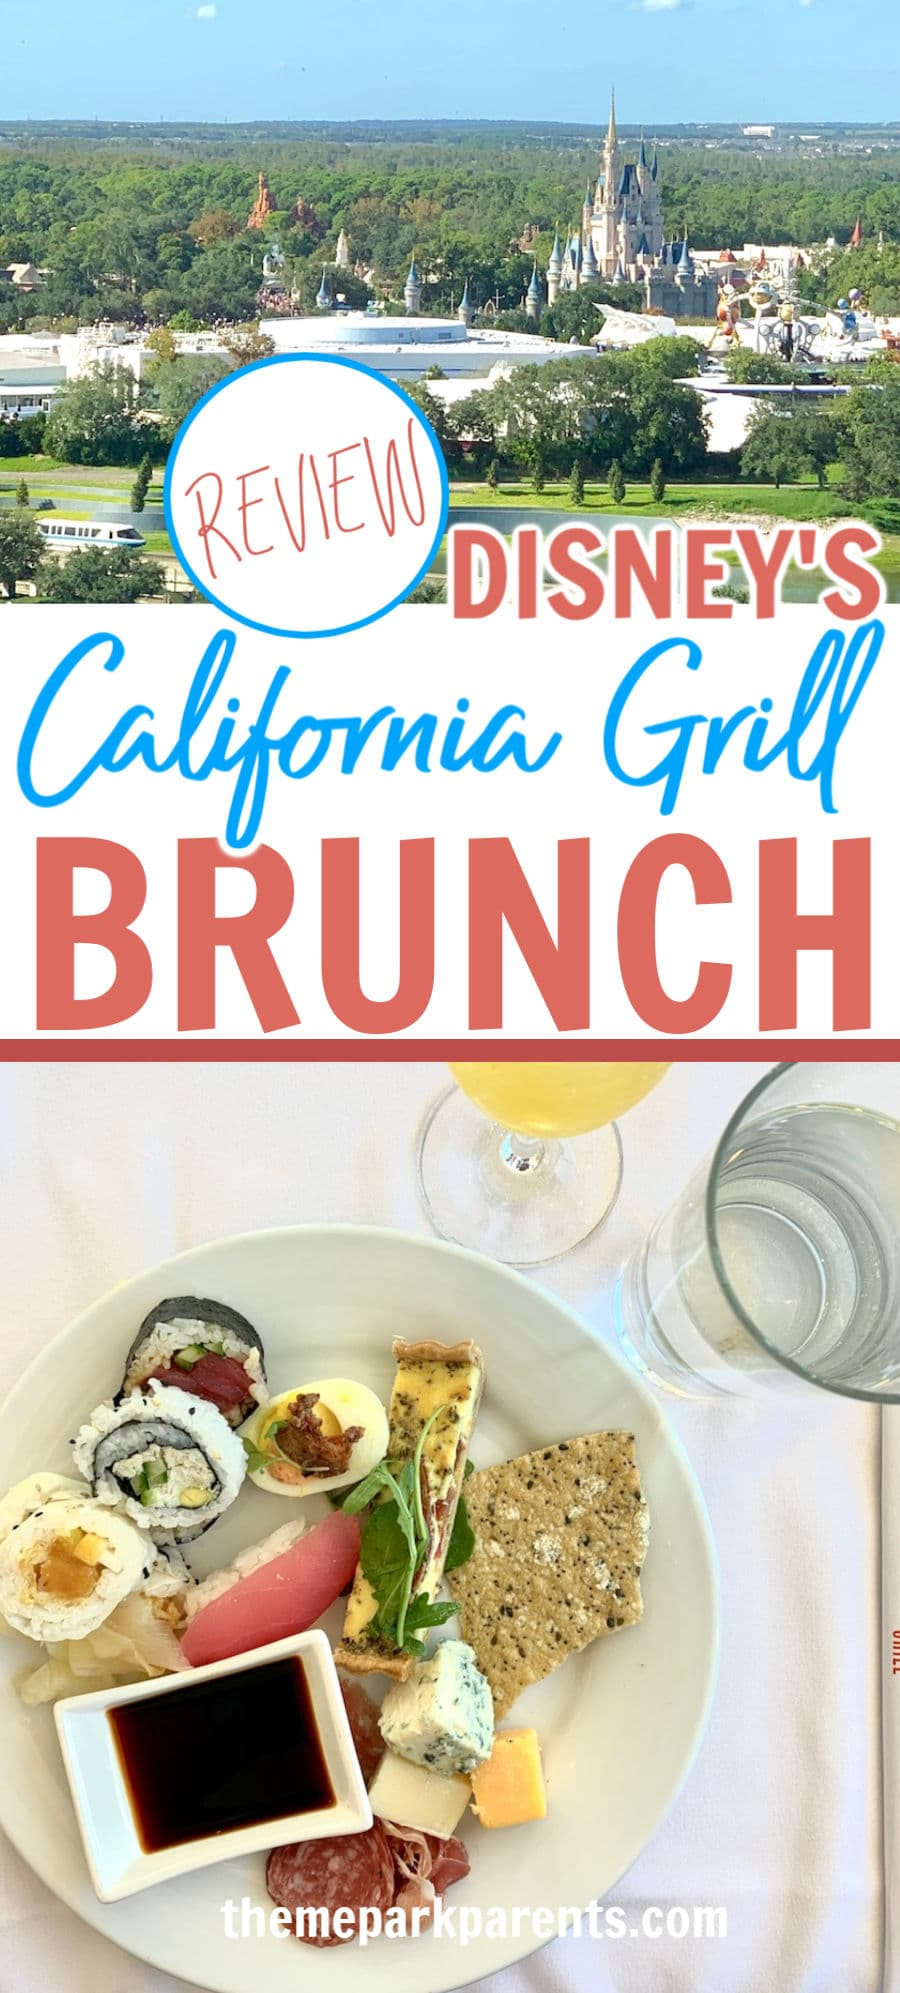 California Grill Brunch at the Top Review